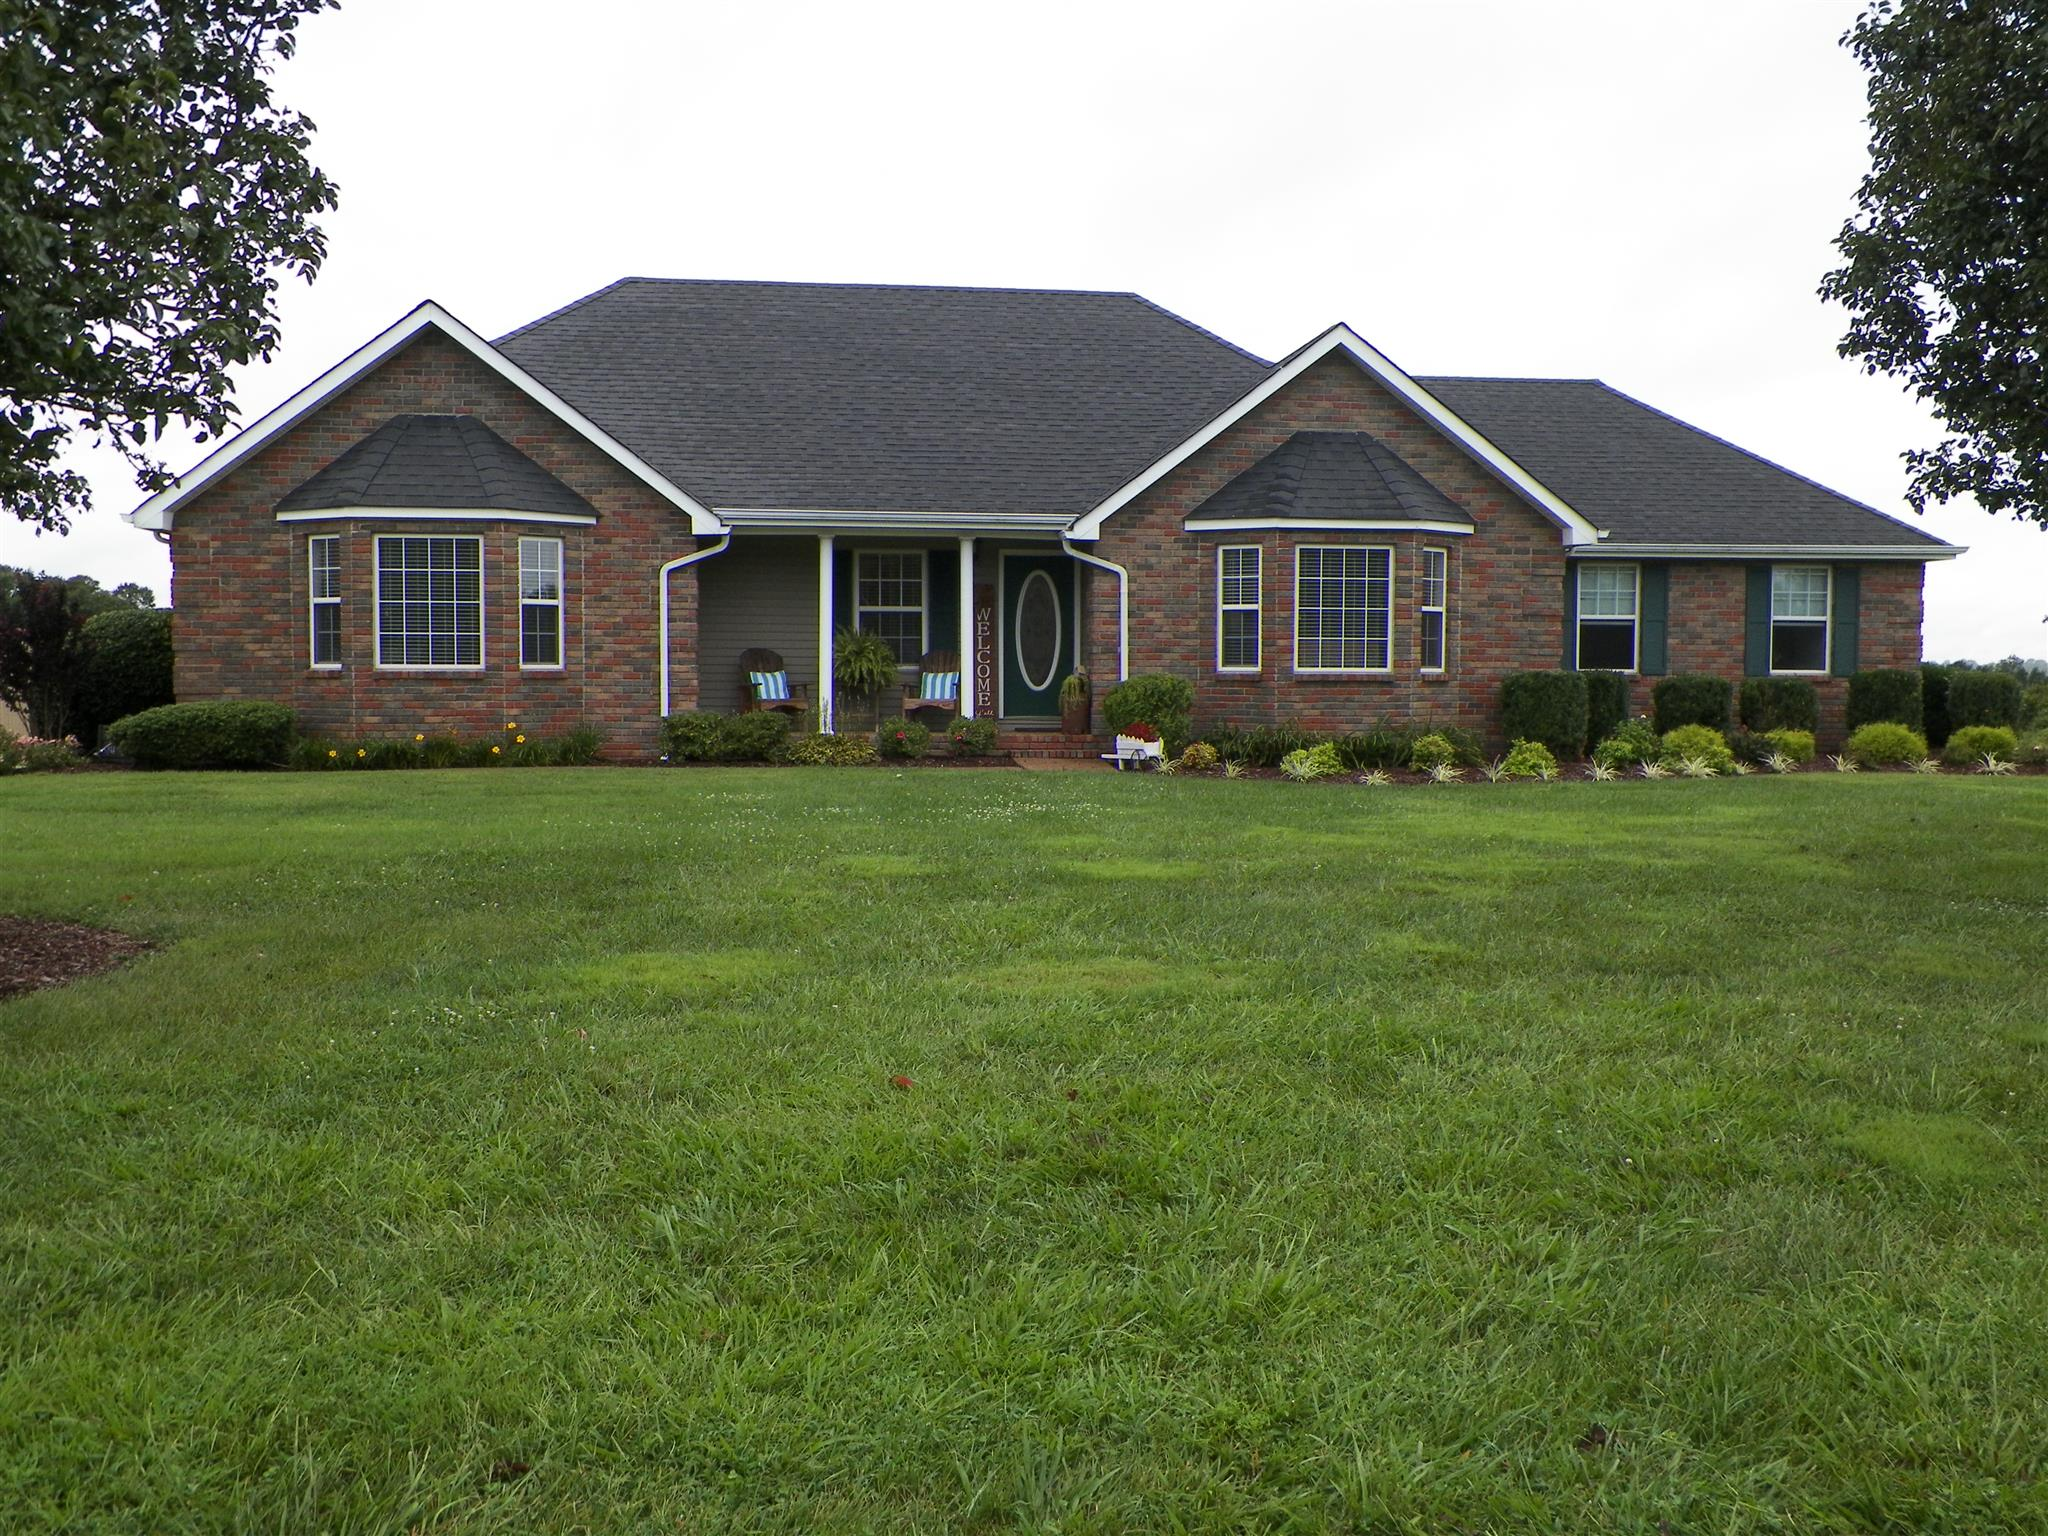 167 Fieldstone Lane, Westmoreland, TN 37186 - Westmoreland, TN real estate listing